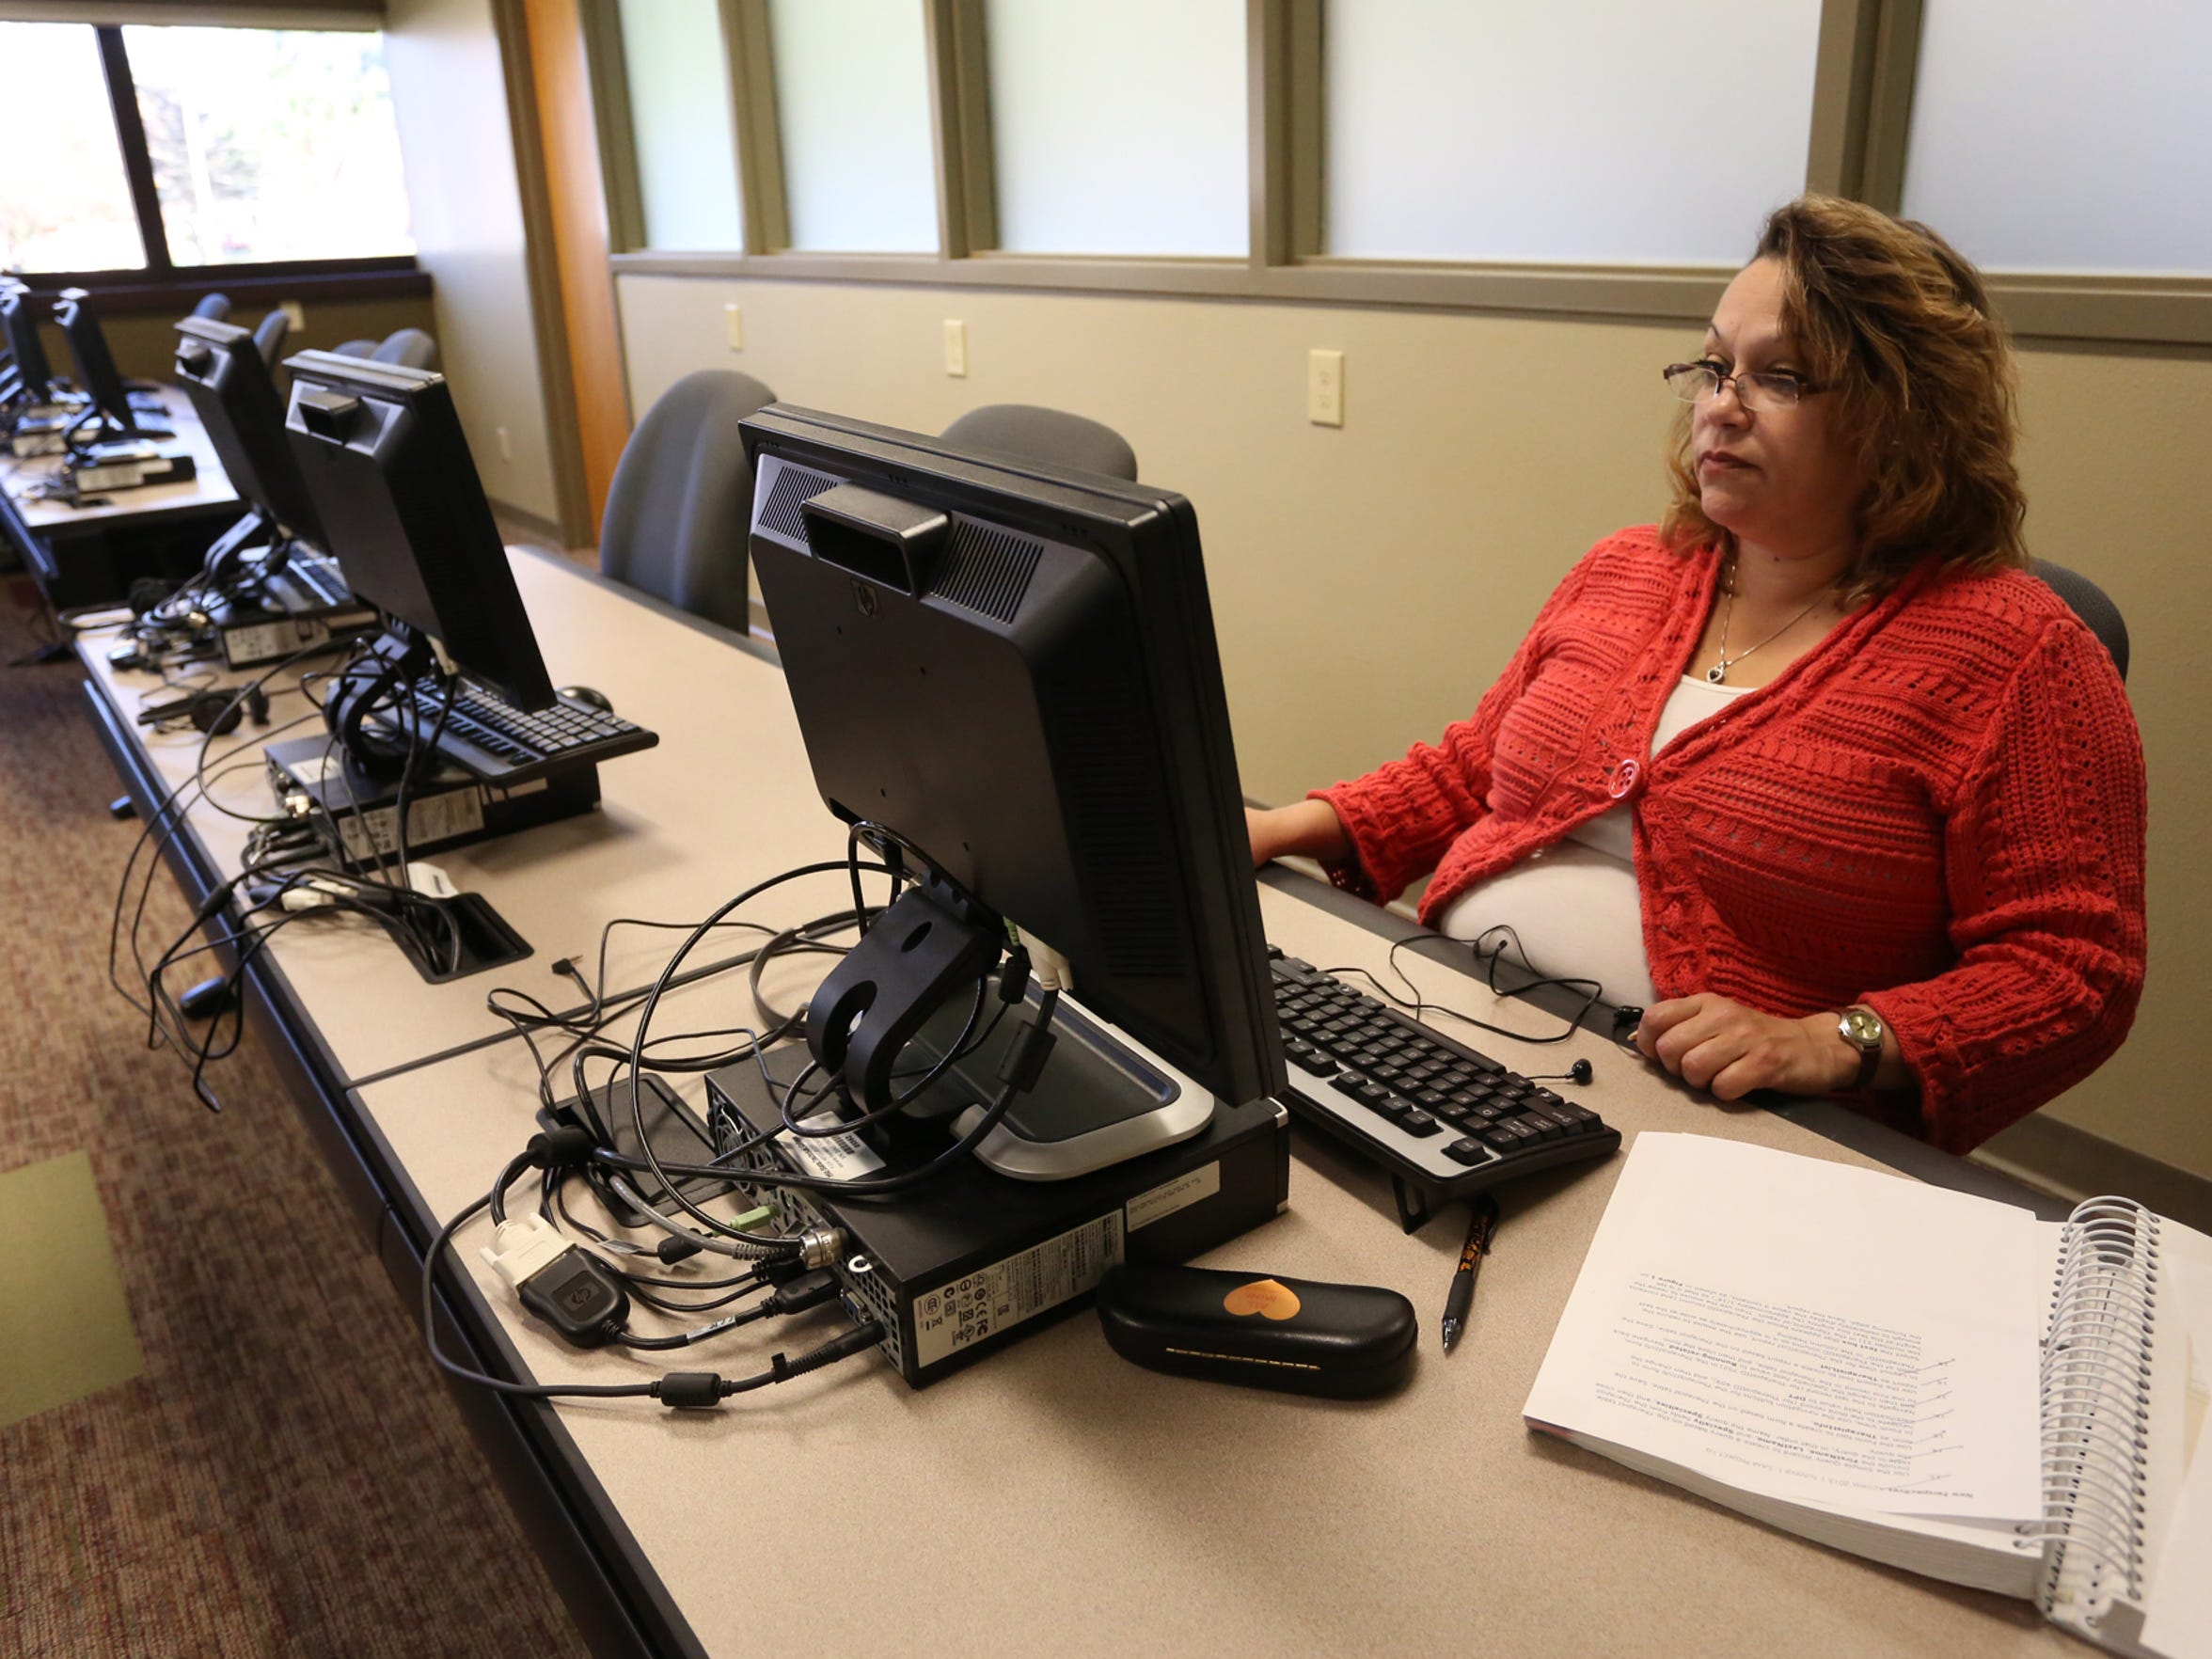 Lisa Rios works at a computer during one of her classes